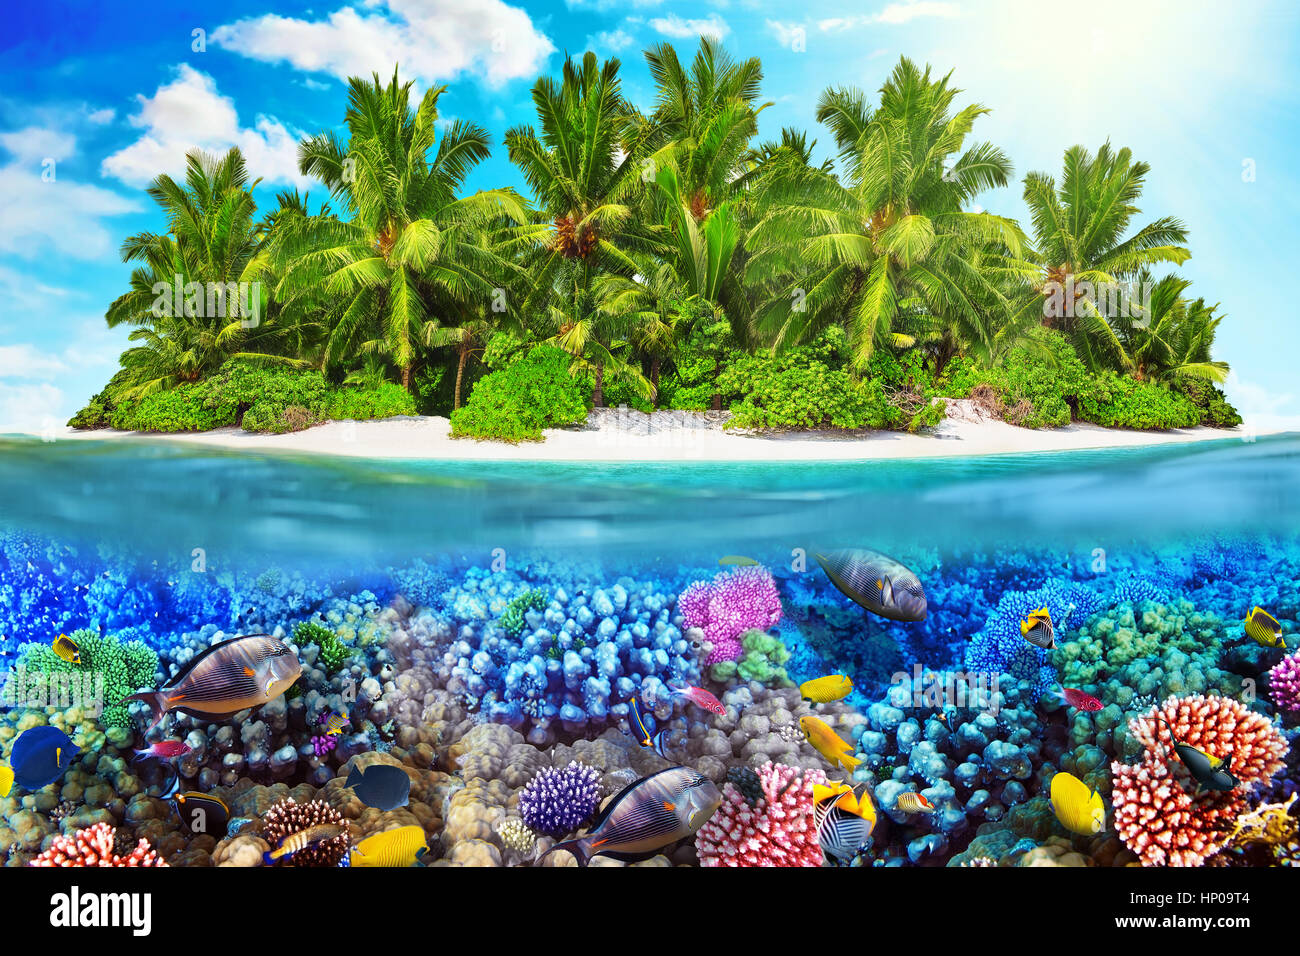 Tropical Island Within Atoll In Ocean And Wonderful Beautiful Underwater World With Corals Fish Stock Photo Alamy